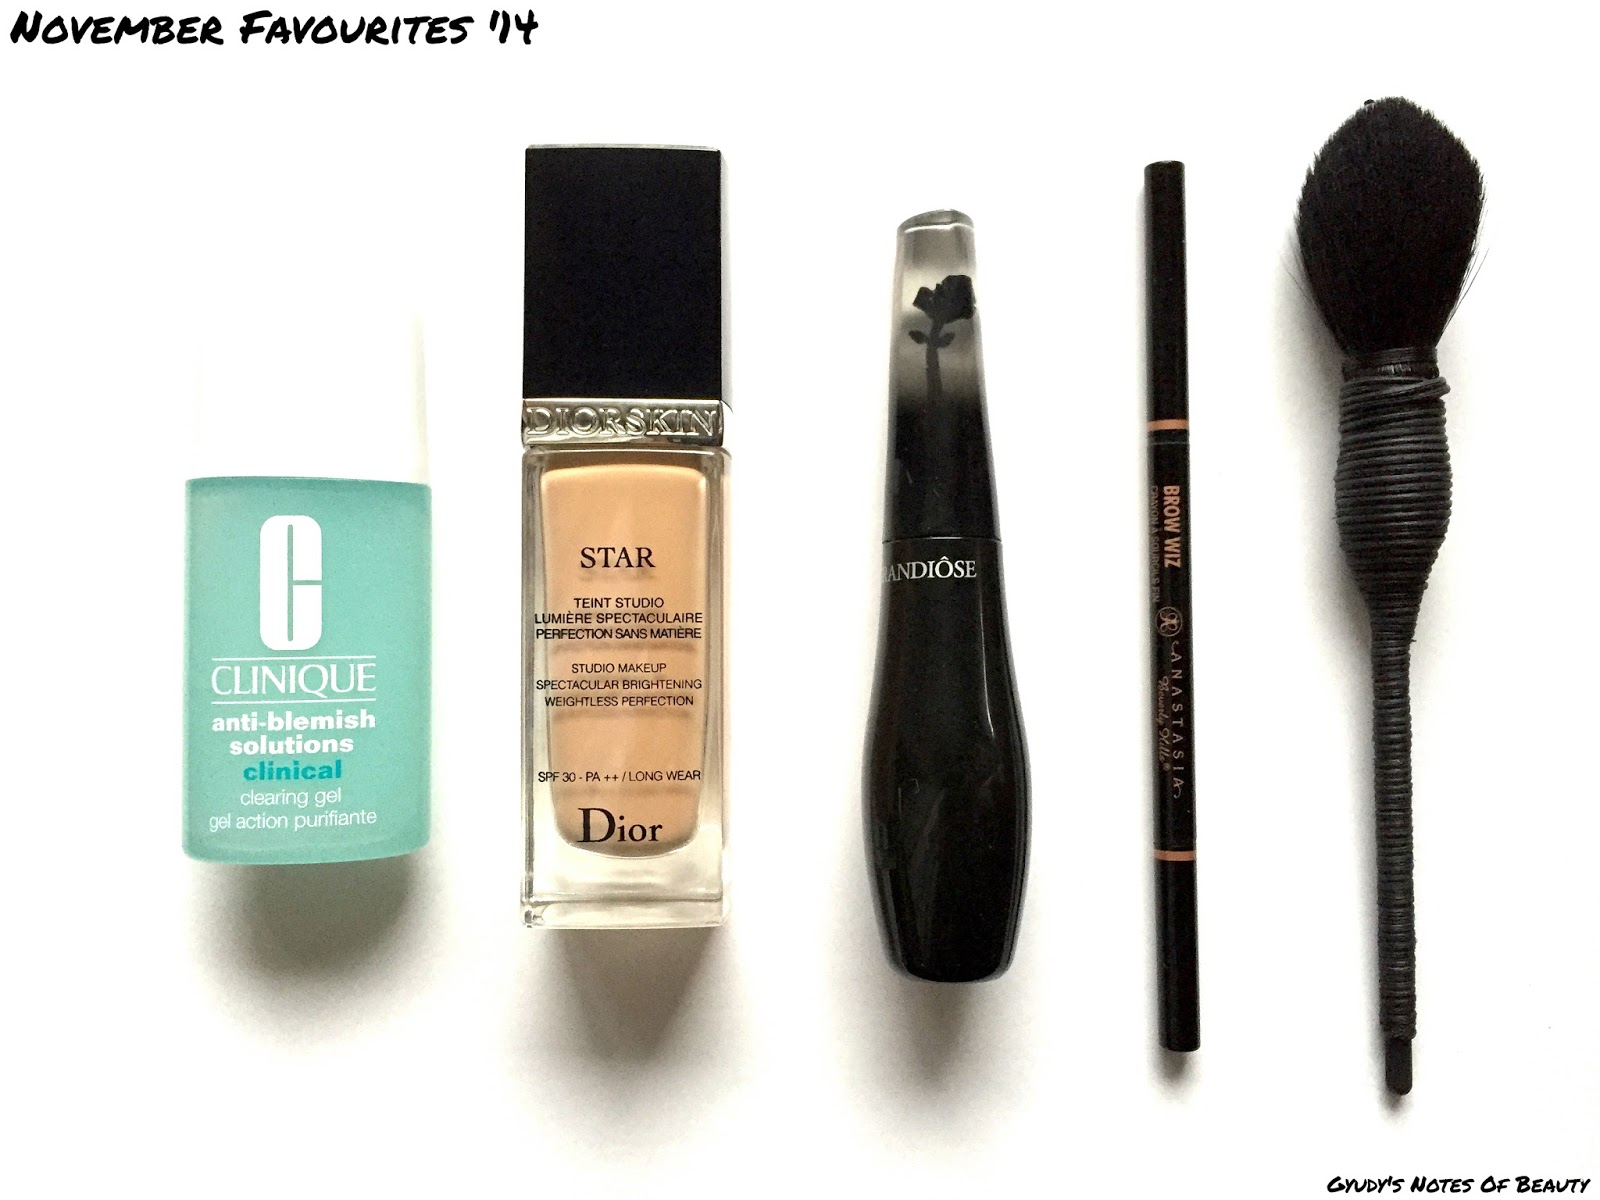 Diorskin Star Lancome Grandiose Anastasia Brow Wiz Nars Yachiyo Clinique Clearing Gel